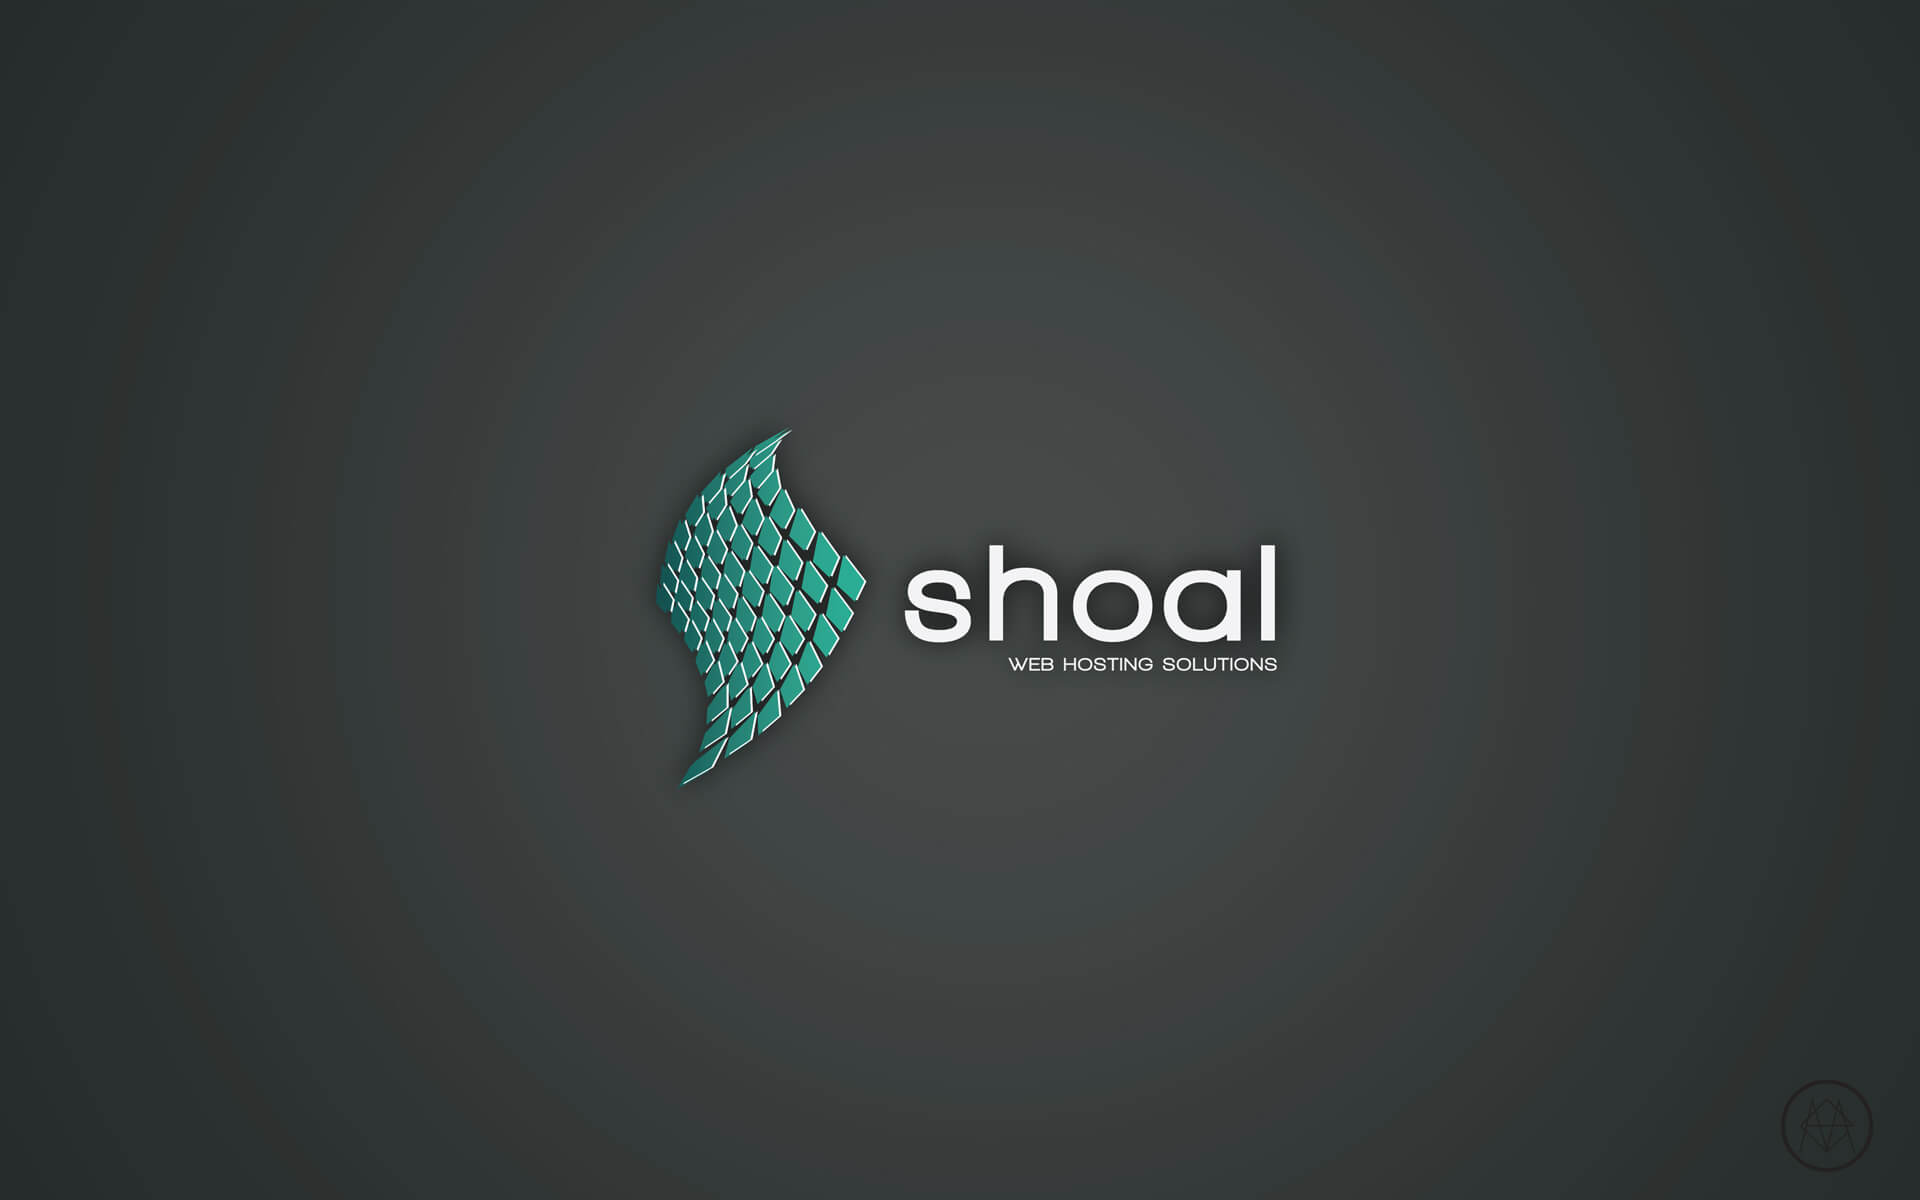 shoal by markos-esther